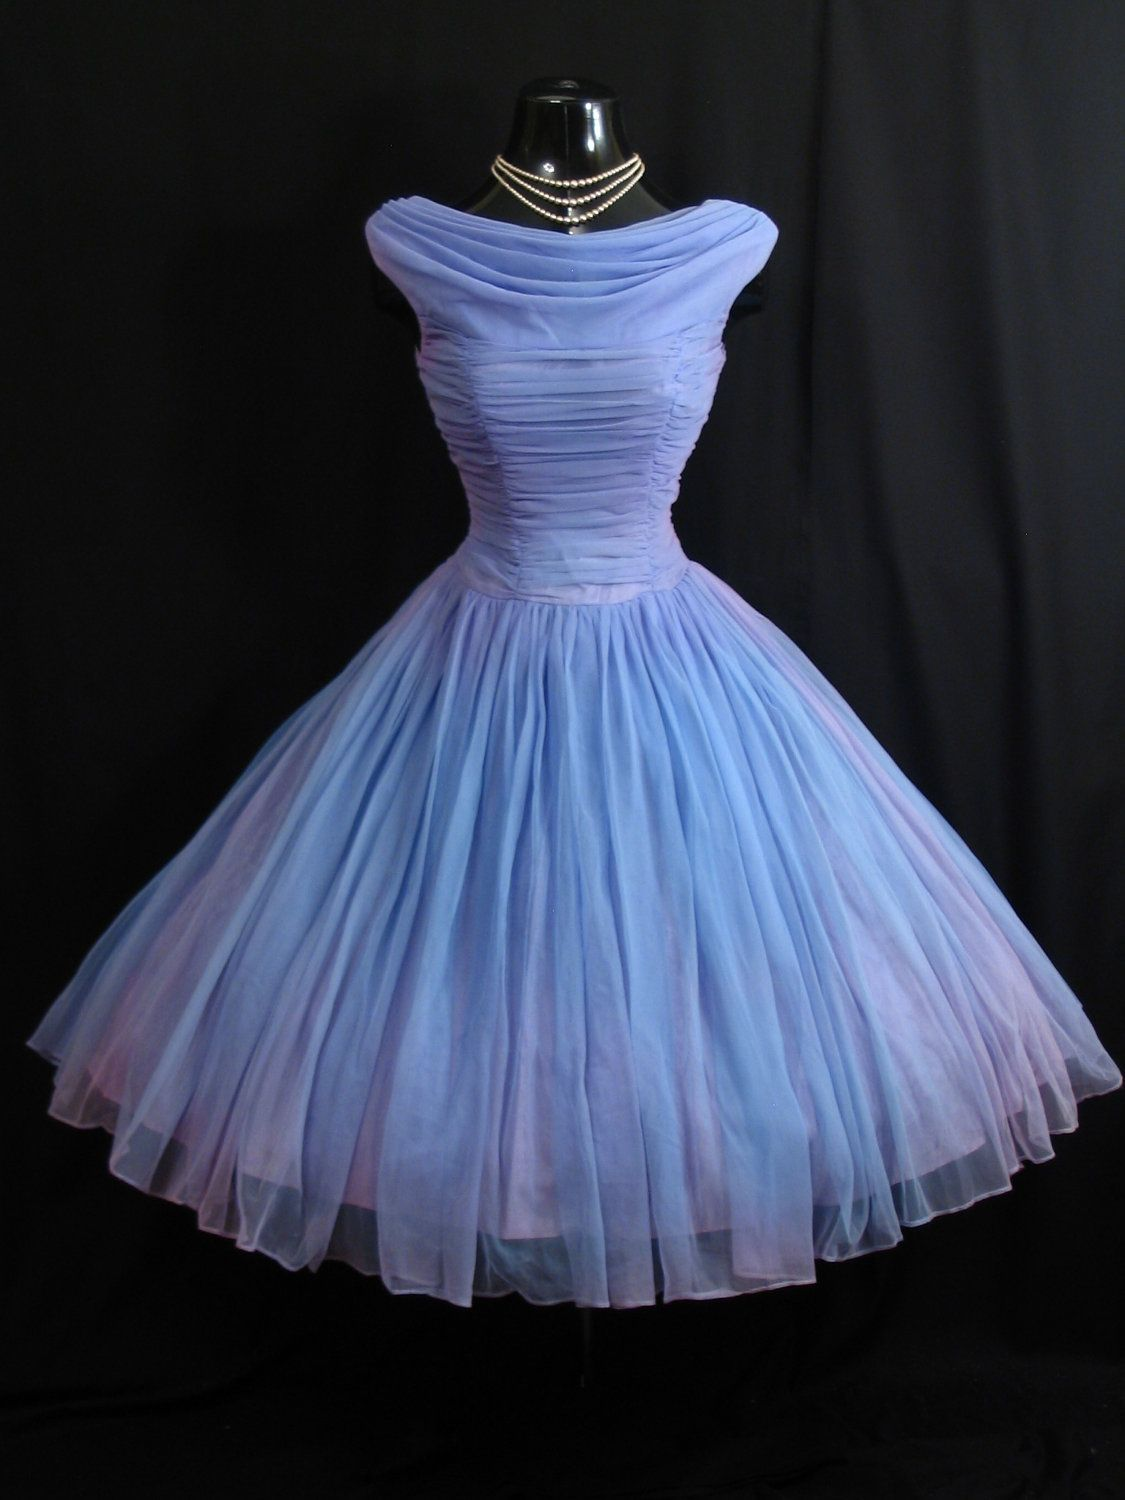 A Periwinkle Chiffon 1950s Dress, all ruched and gathered and ...